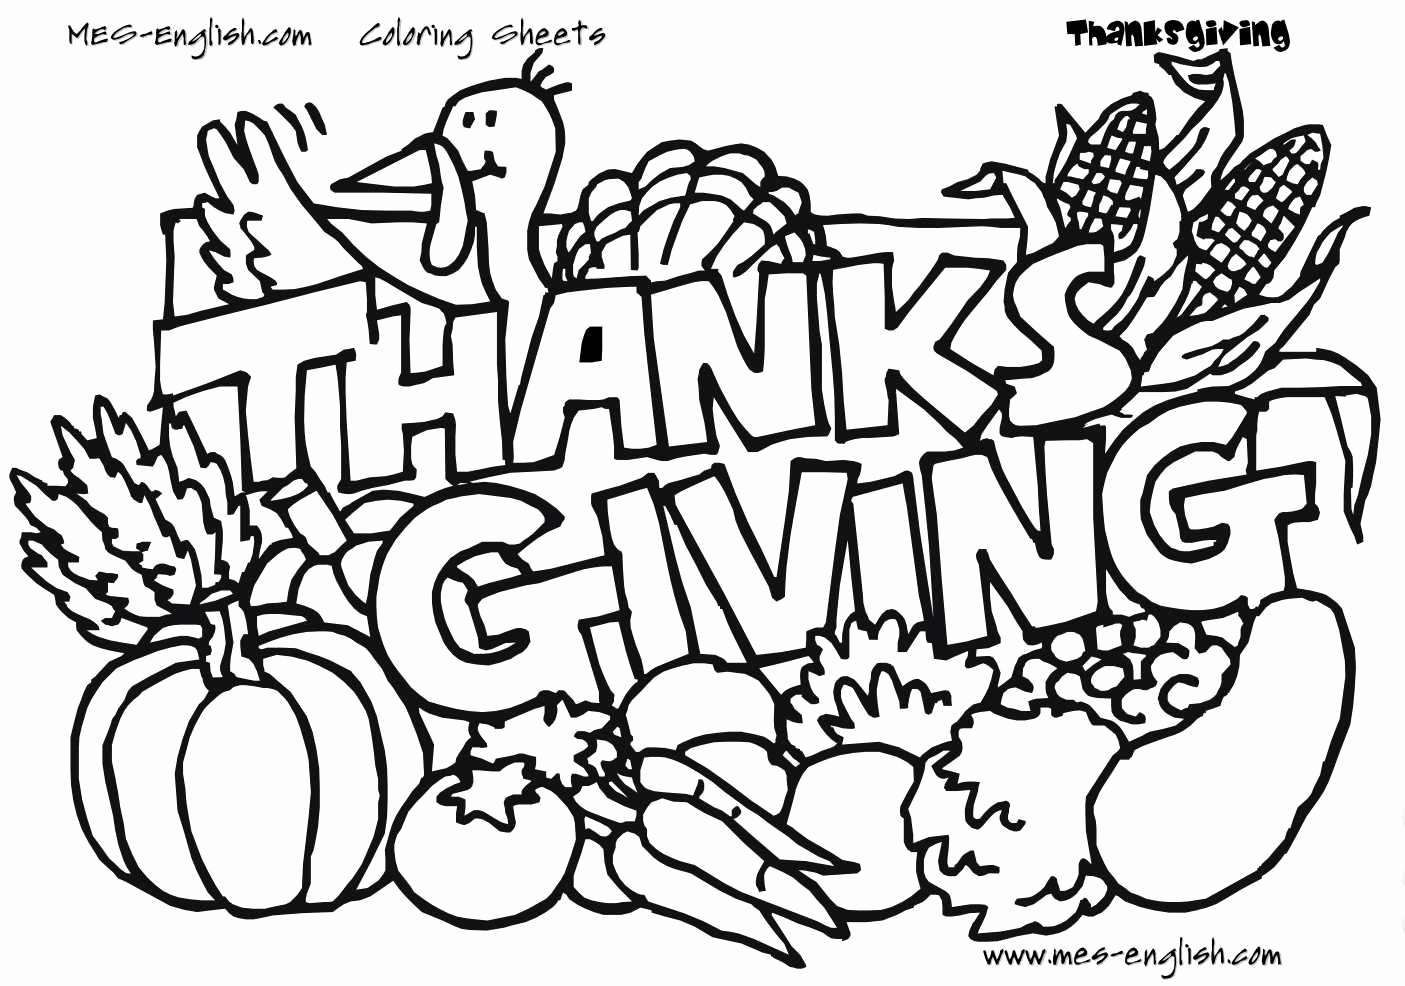 1405x986 Thanksgiving Coloring Pages For Kids Thanks Giving Coloring